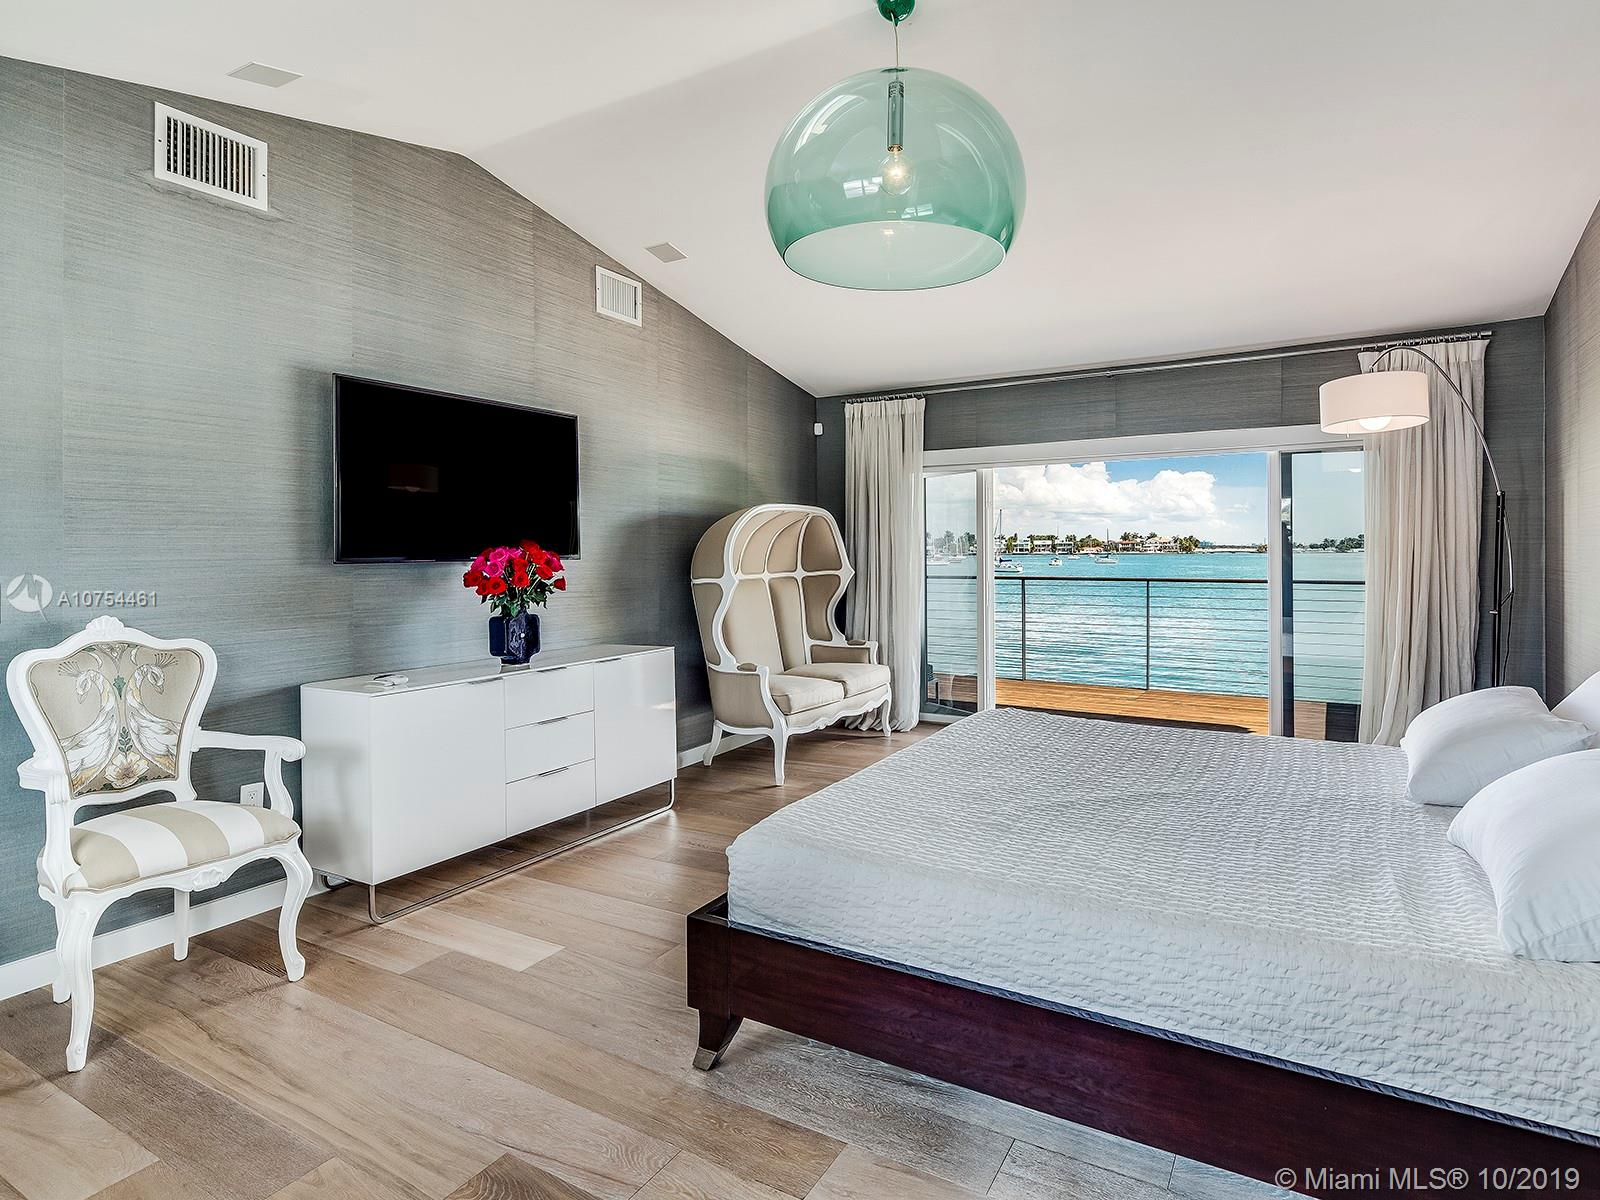 295 Coconut ln-0 miami-beach-fl-33139-a10754461-Pic16